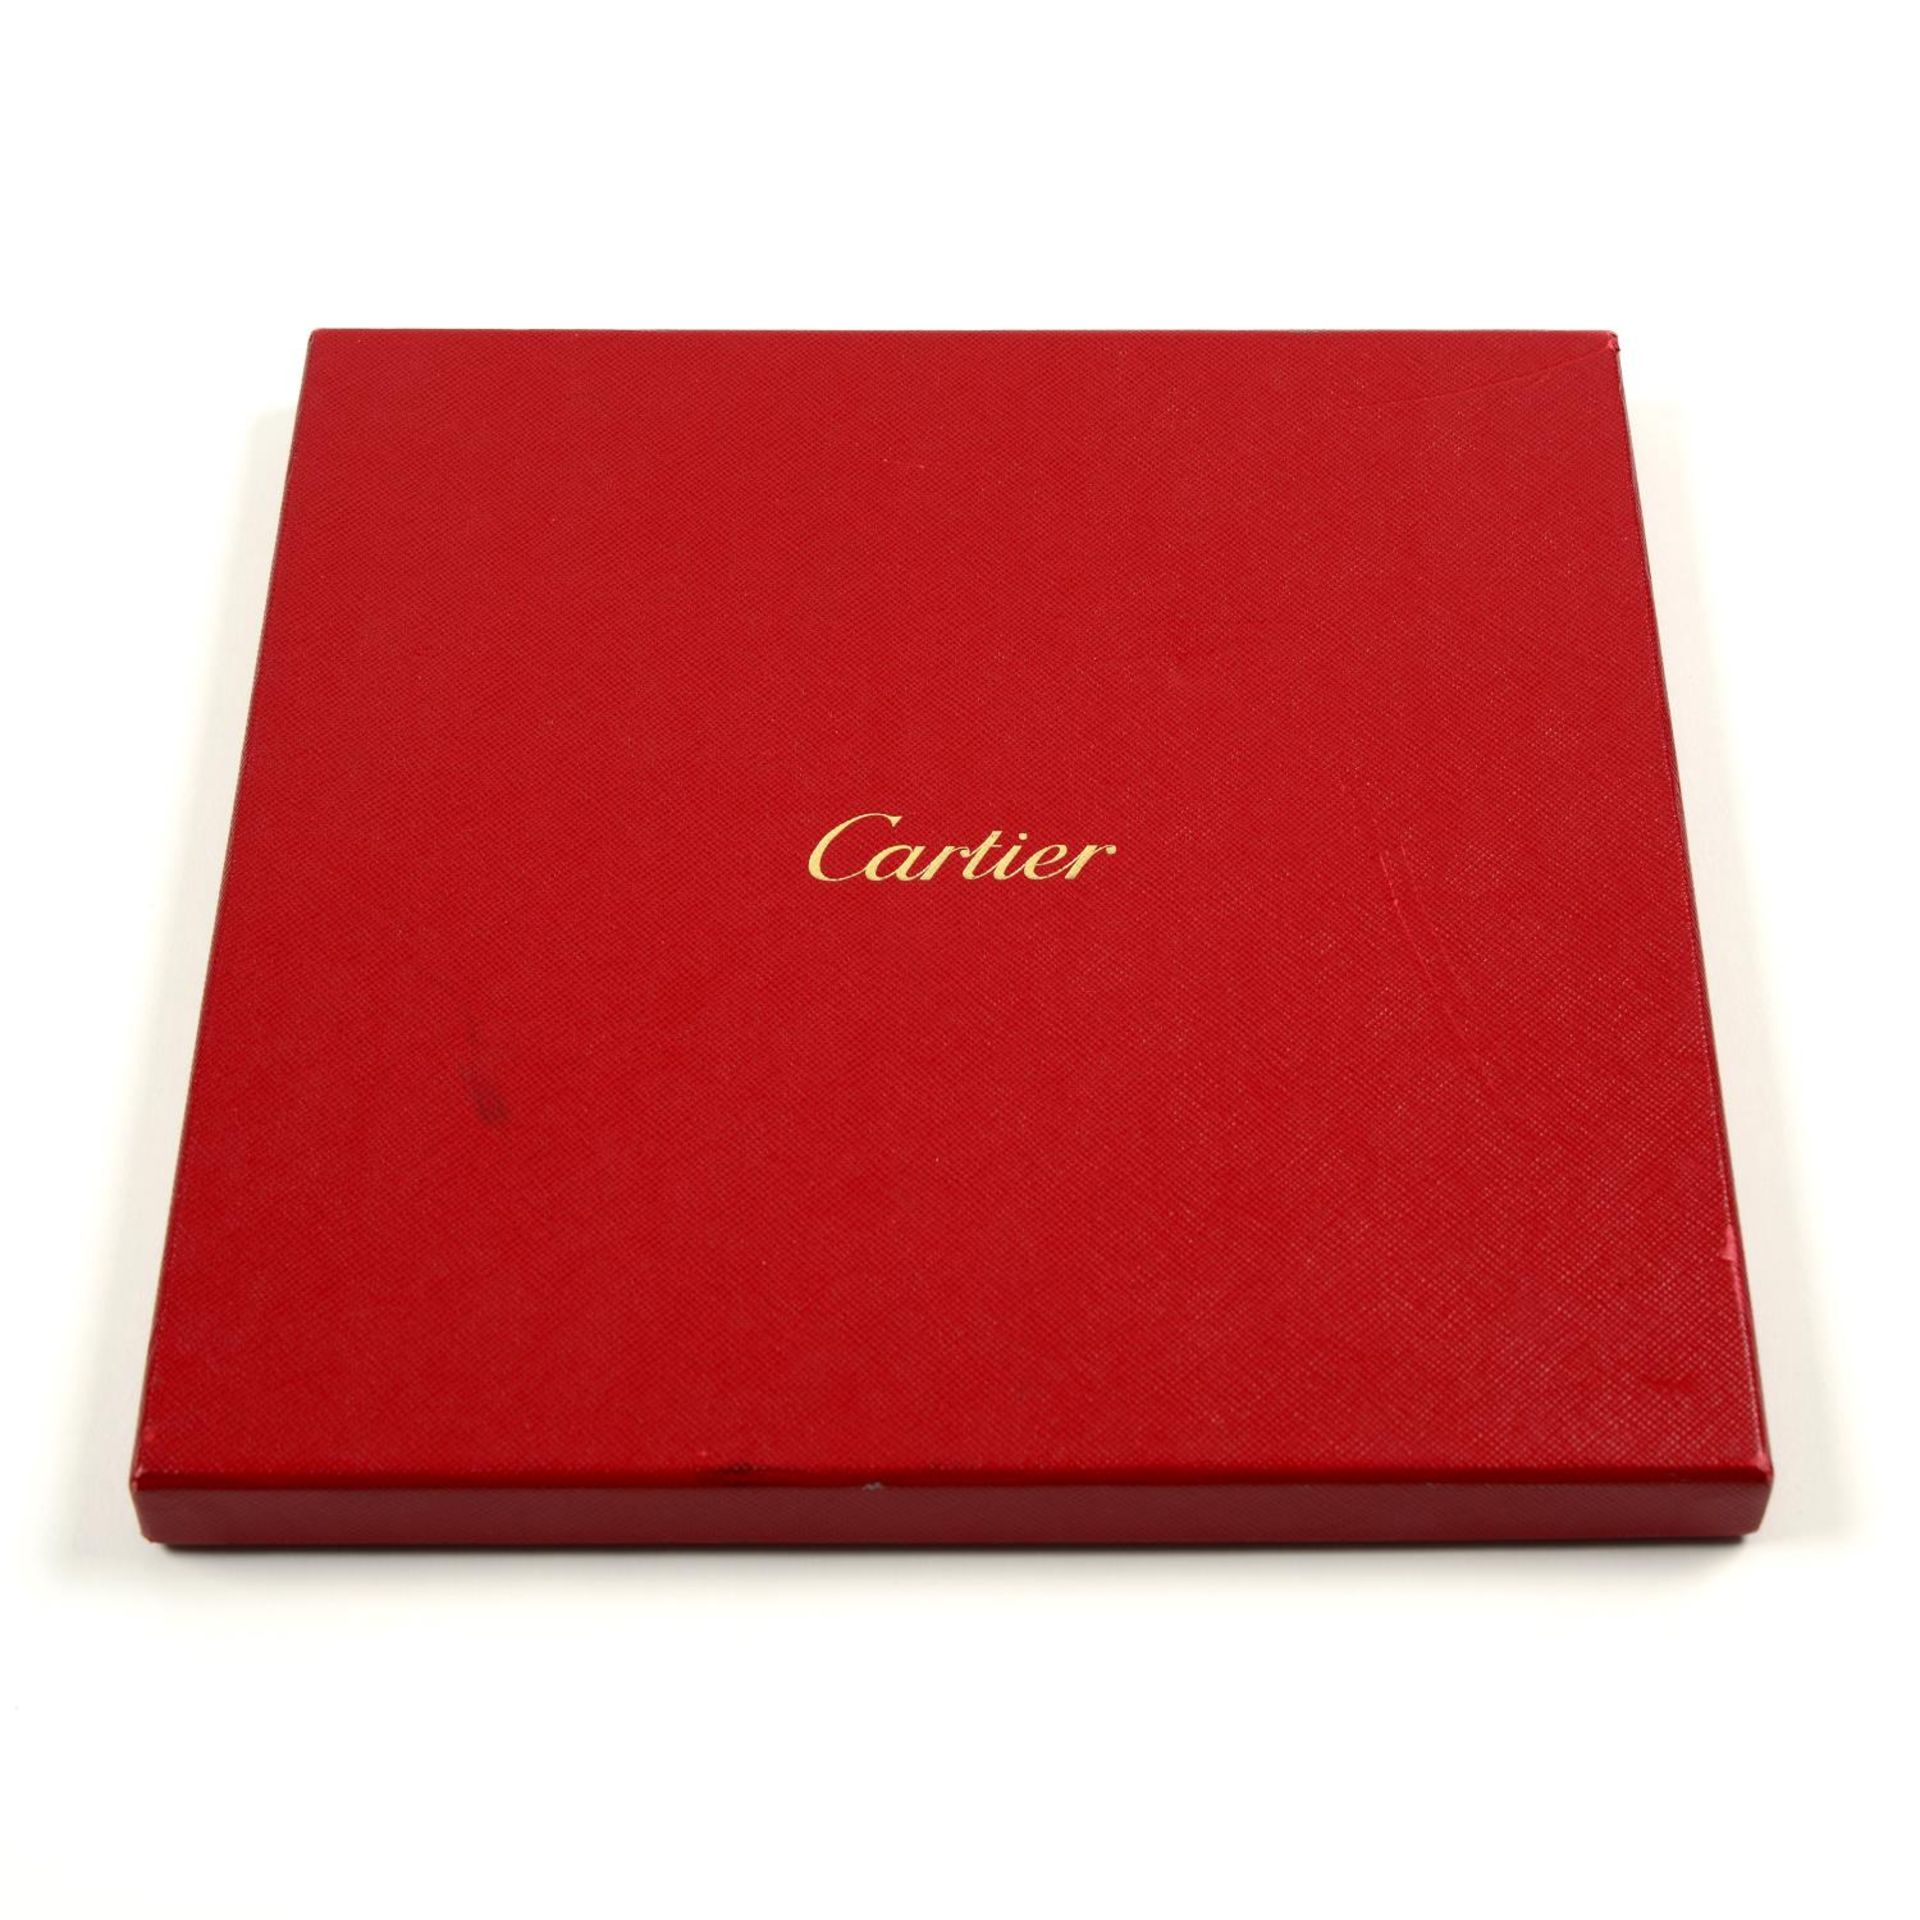 CARTIER - a silk twilly. - Image 4 of 4